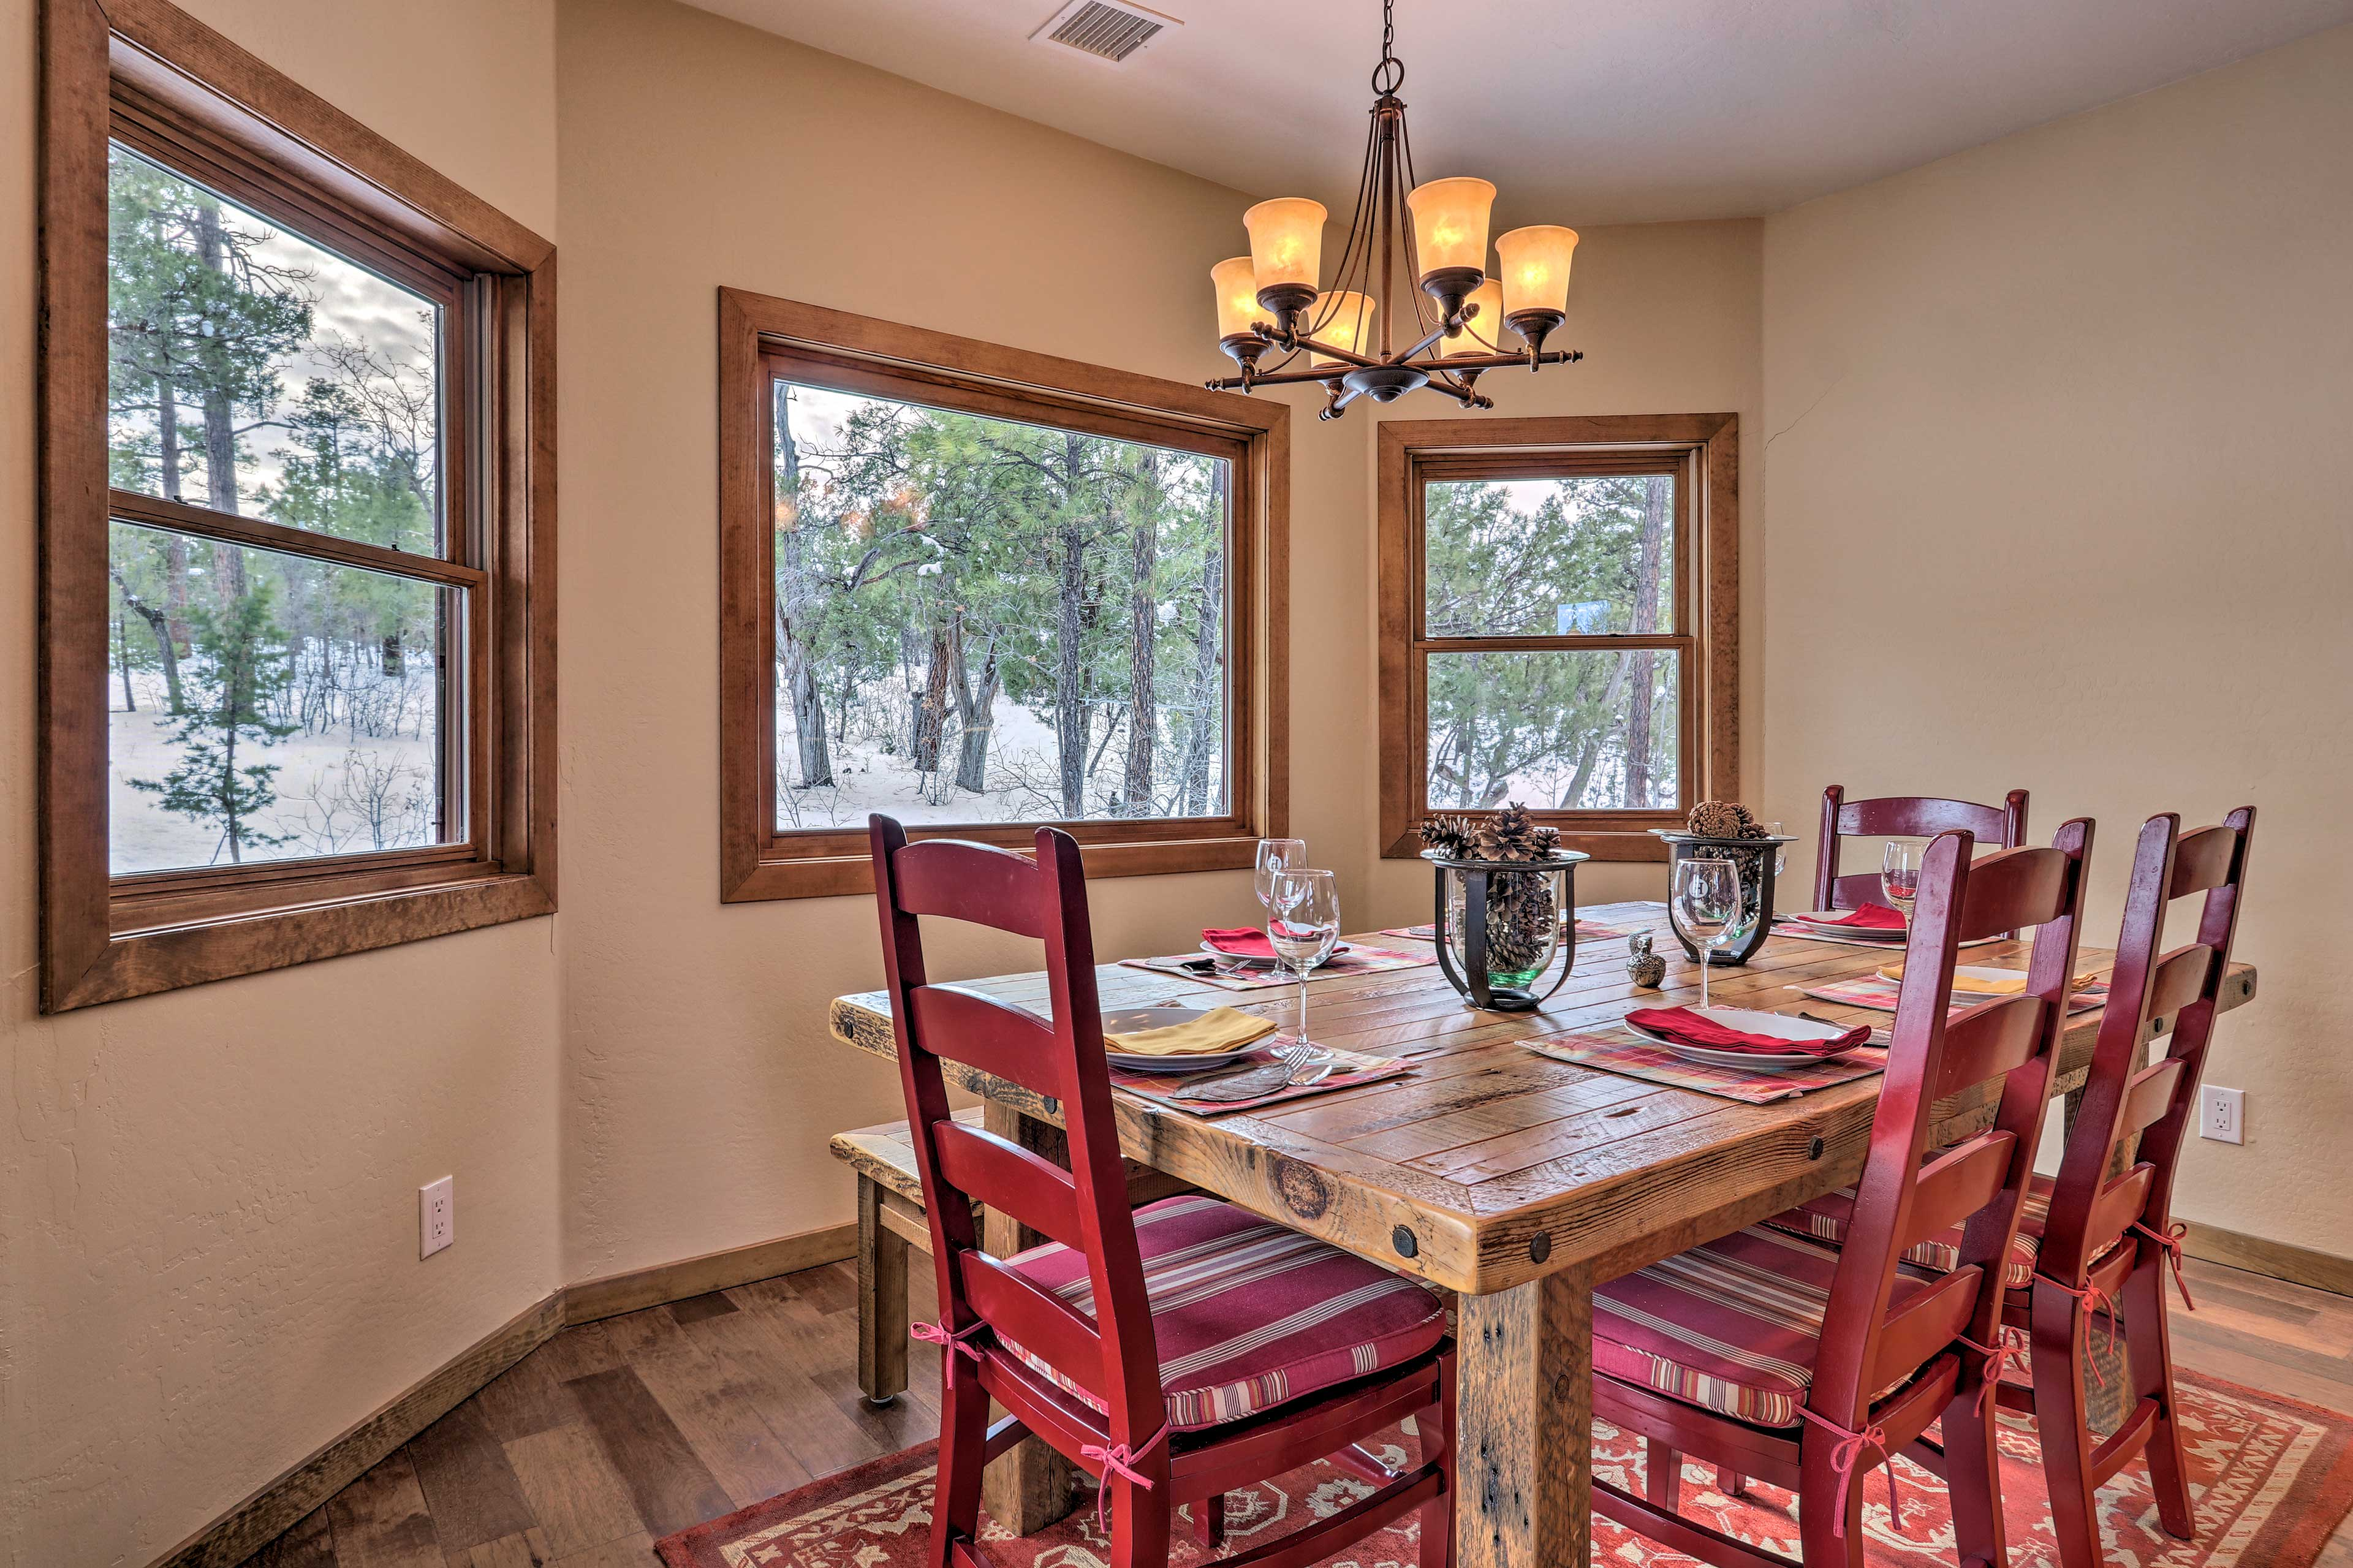 Wine and dine in the comfort of your home-away-from-home.